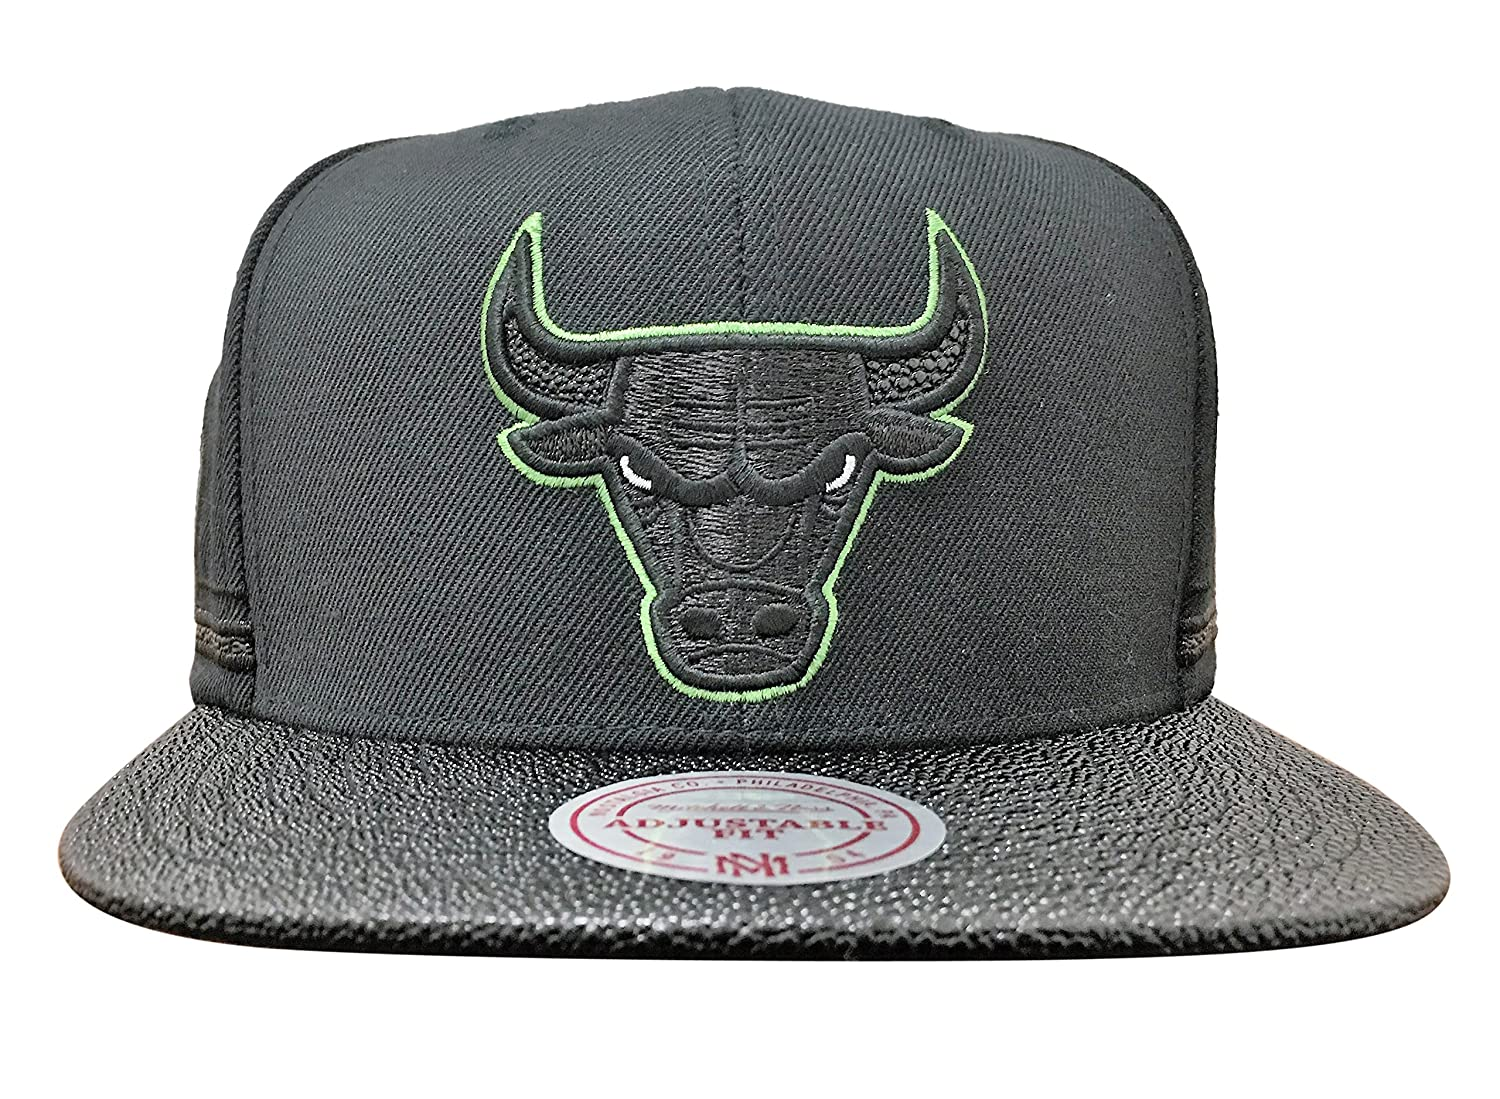 54e5a6a86eb Top1  Chicago Bulls Mitchell   Ness Altitude Jersey Snapback Hat. Wholesale  Price